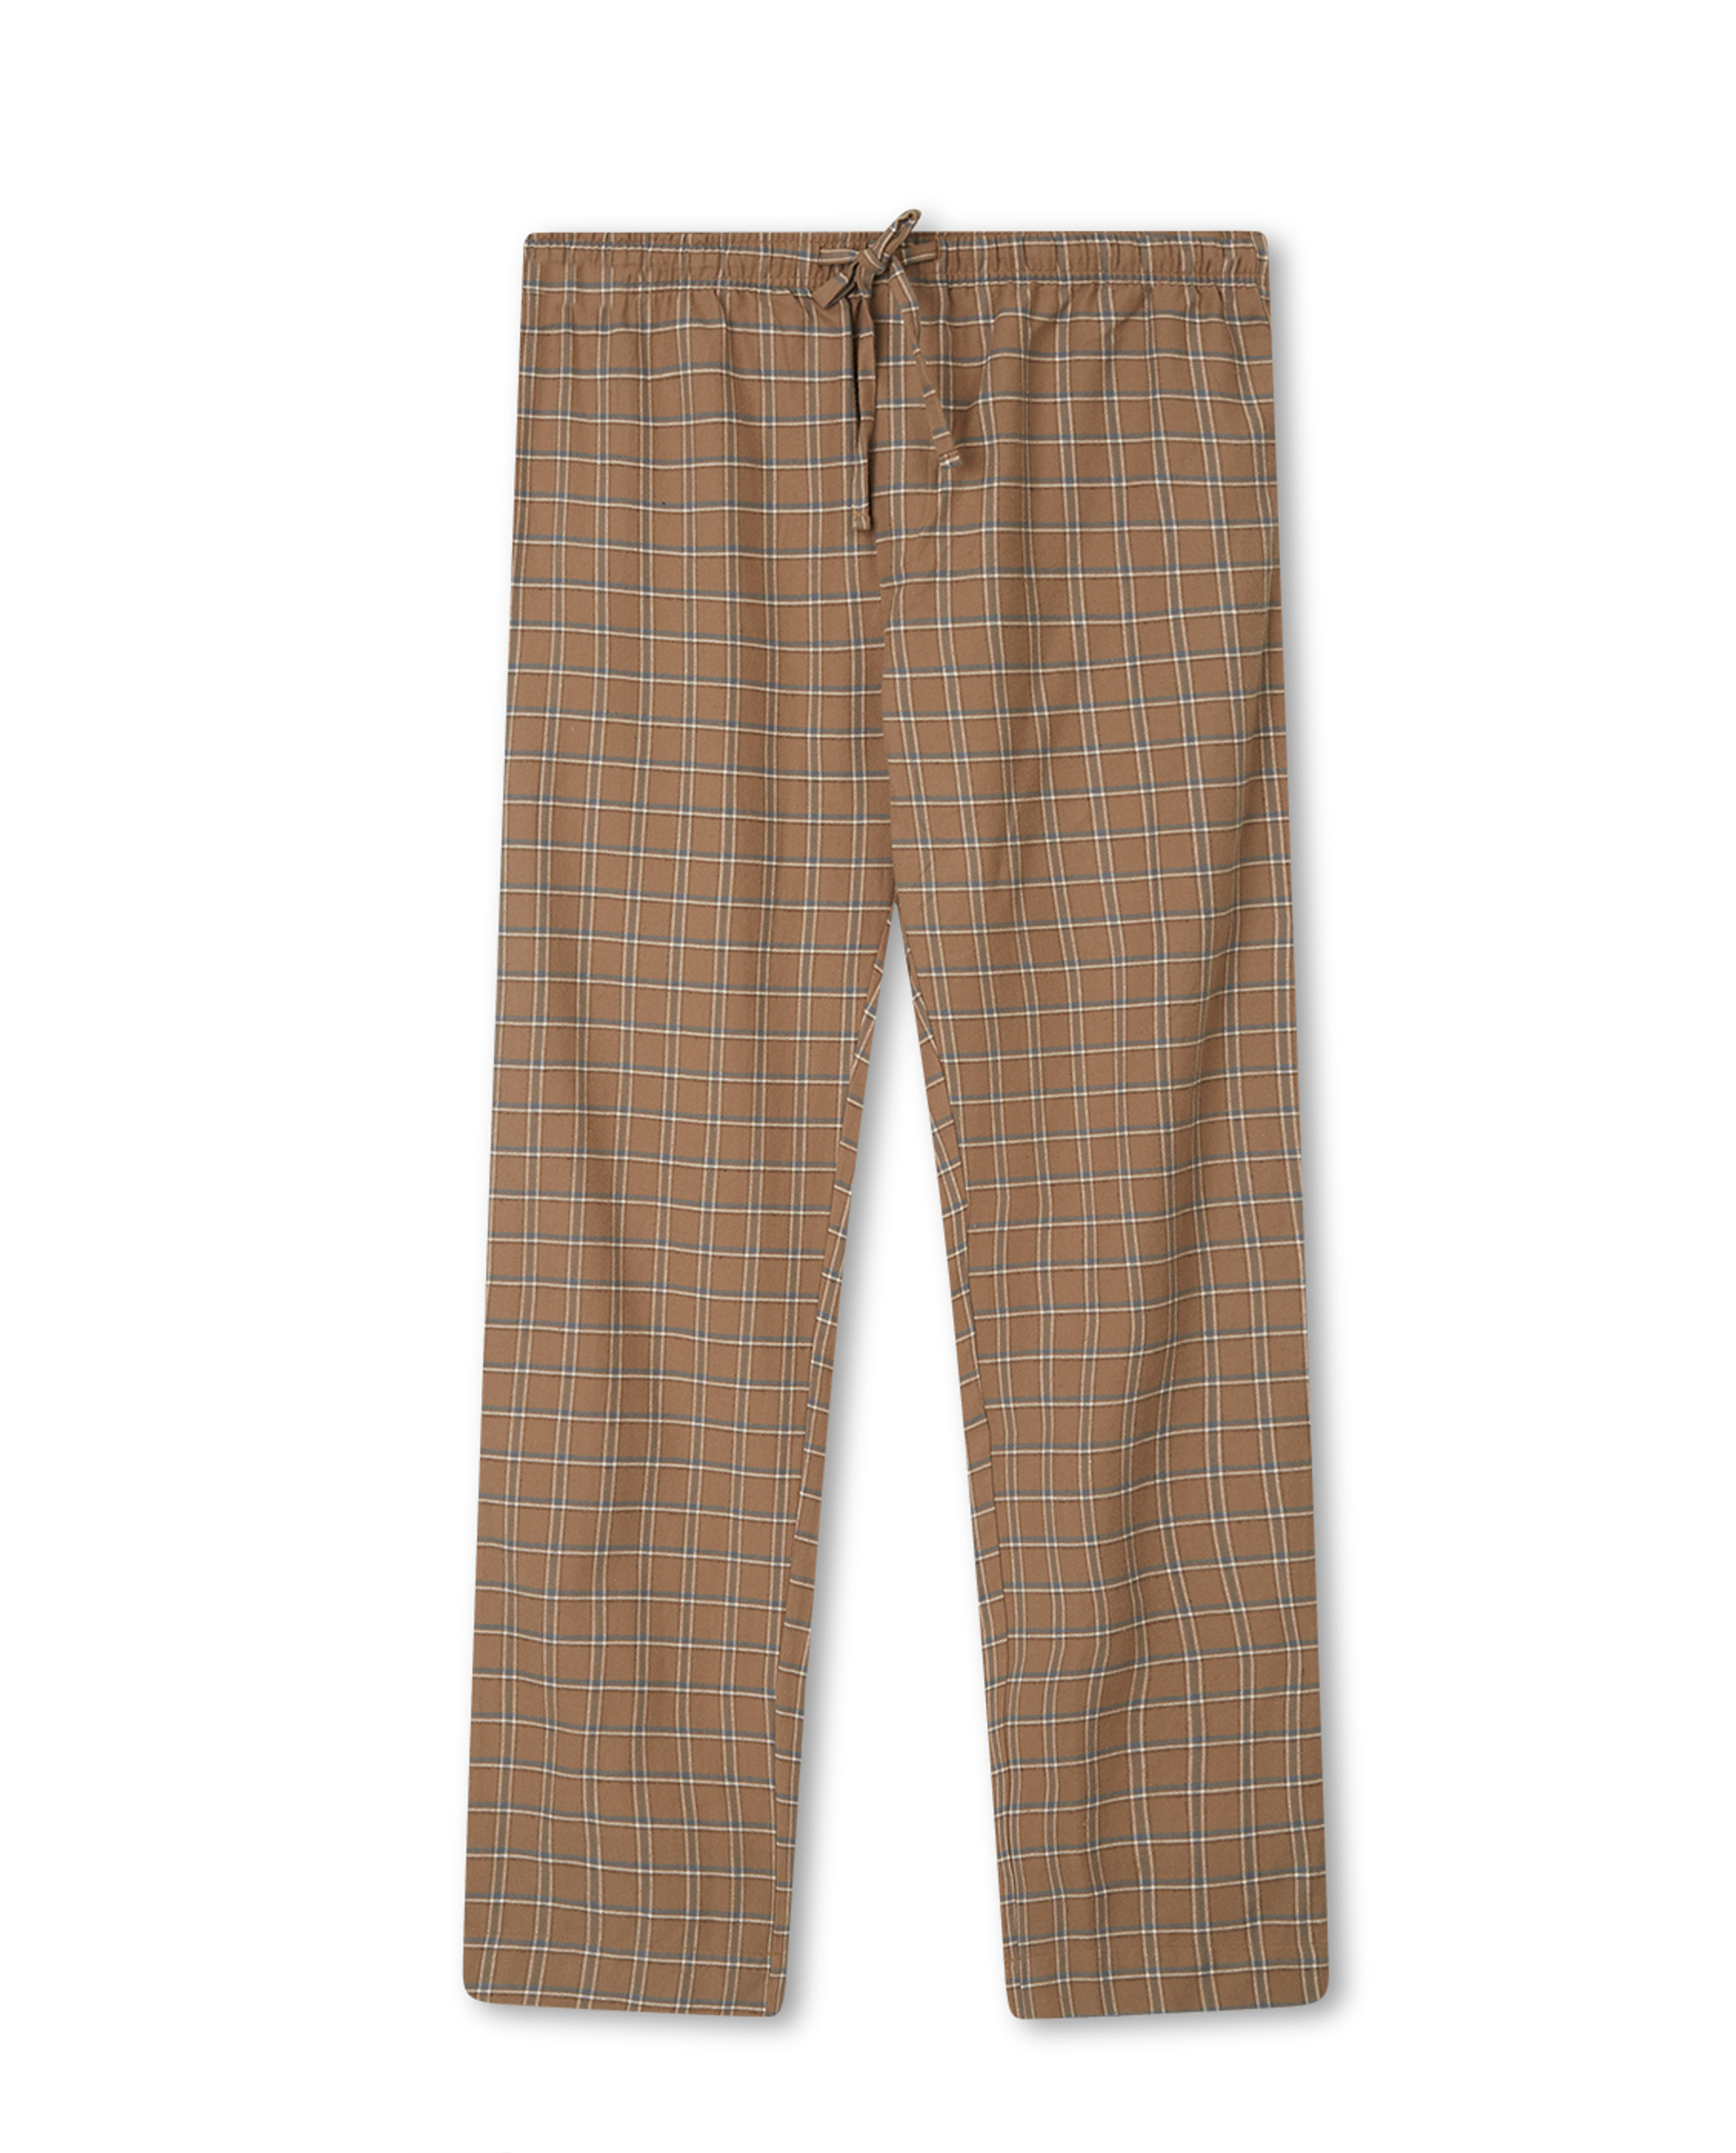 Men's Organic Cotton Flannel/Jersey Pajama Set